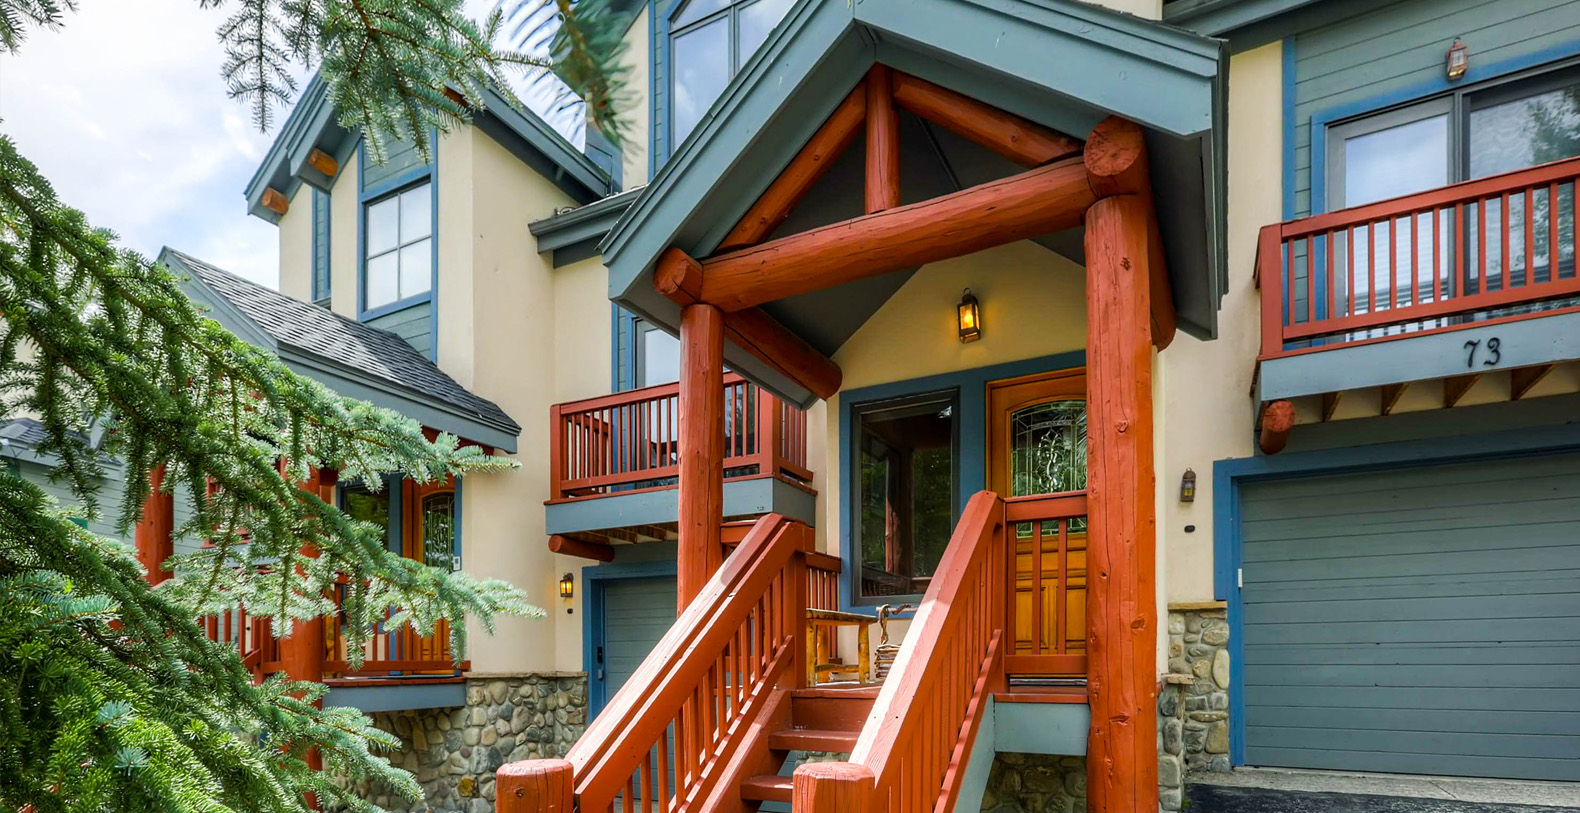 Pines 75 Townhome Breckenridge, Holiday Letting, Vacation ...